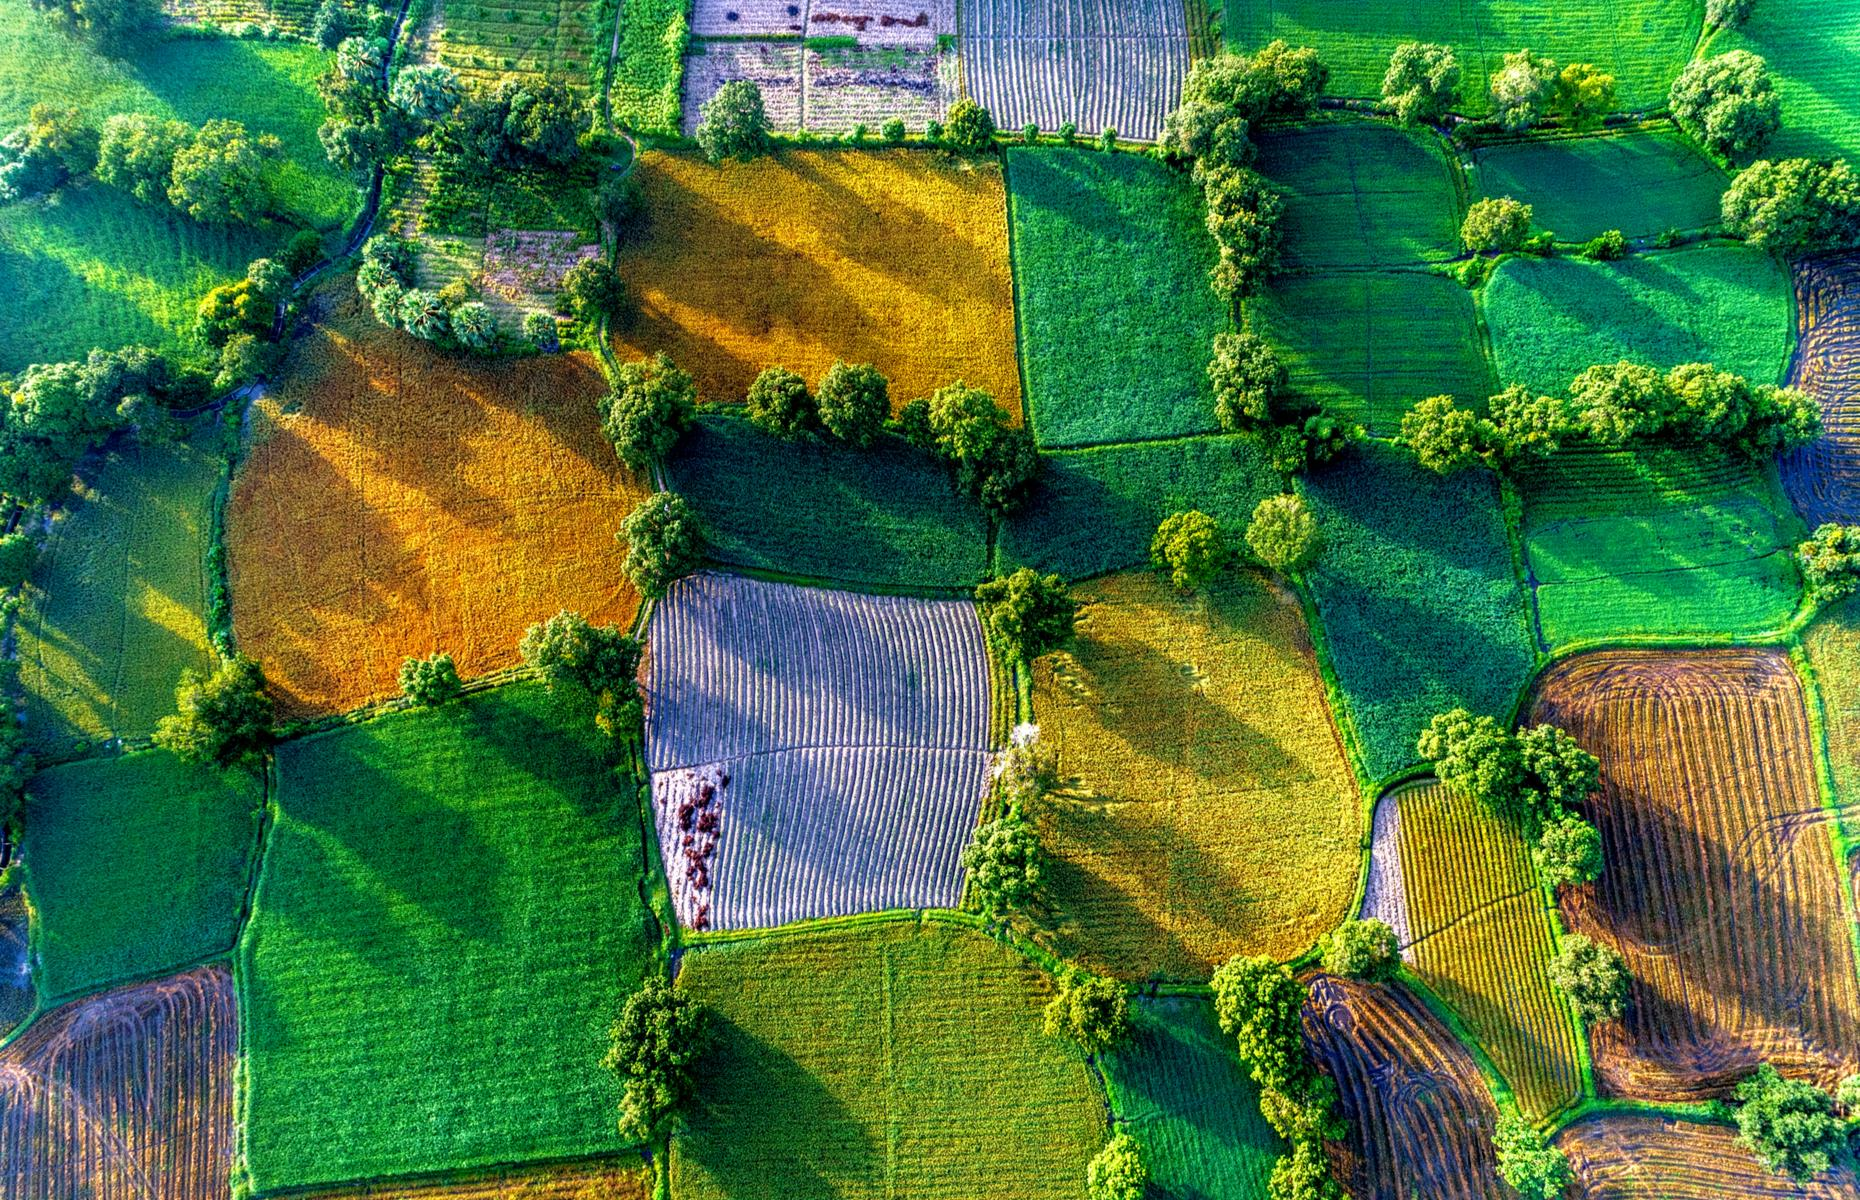 Slide 33 of 43: This colorful tapestry of rice paddies can be found in the rural district of Tri Tôn in Vietnam's An Giang province. The fields – a velvety jigsaw of emerald, shamrock and gold – spread out across the Mekong Delta and look spectacular from up high.